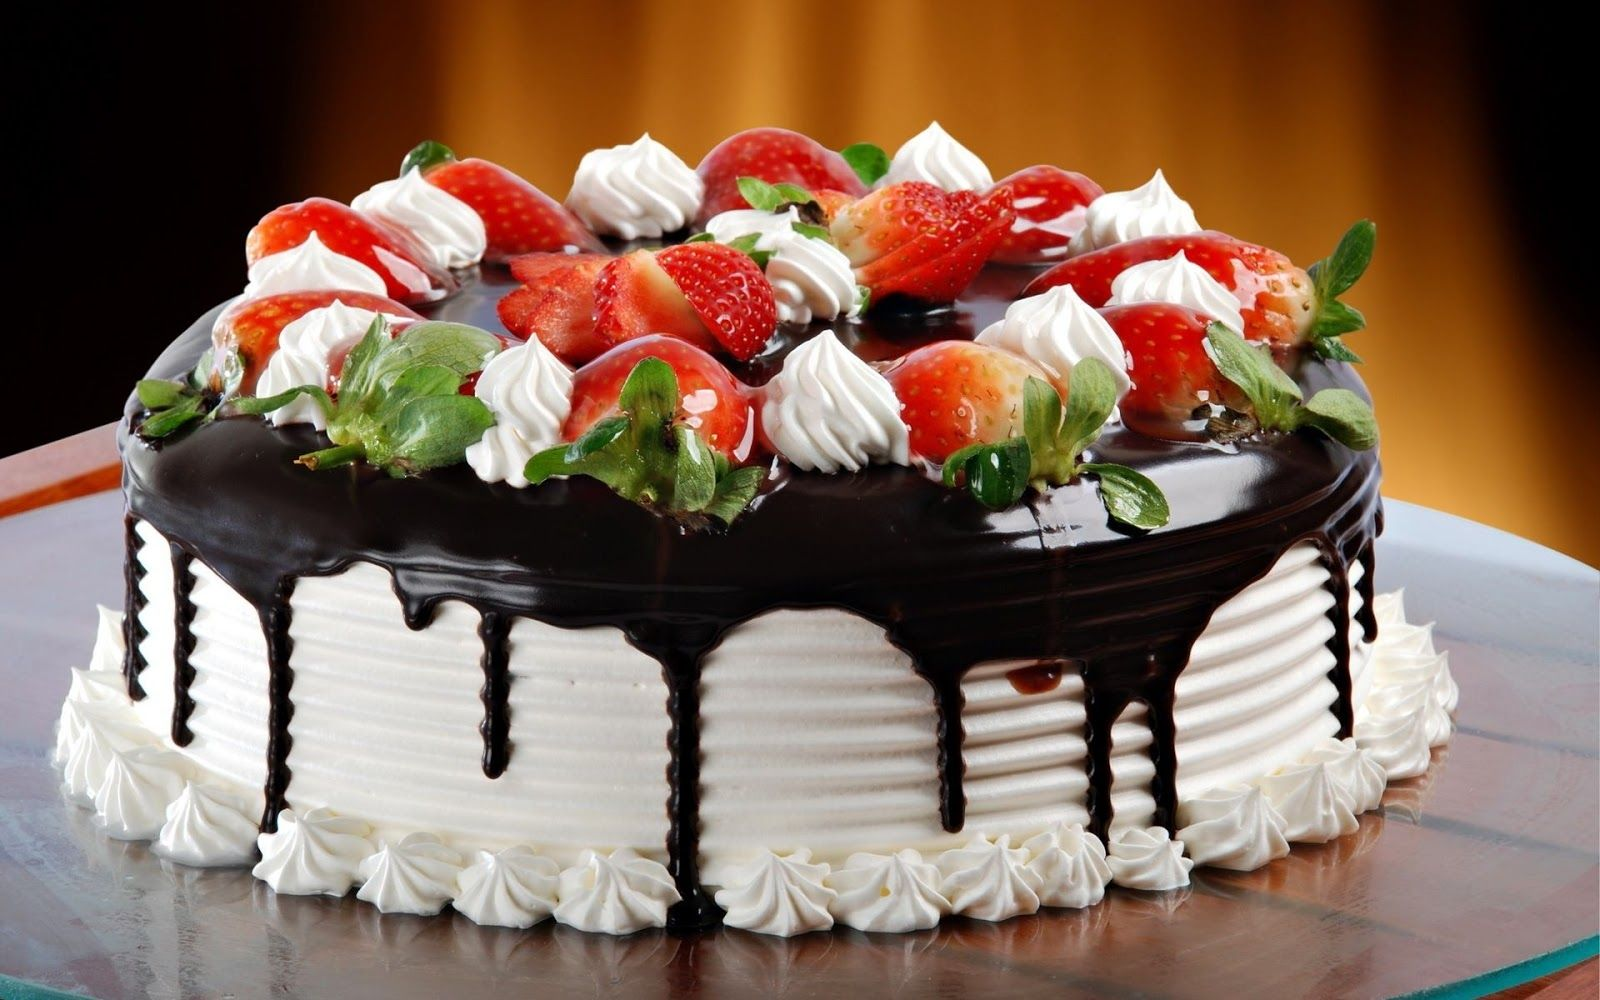 Modern Art Desserts Desktop Wallpapers Cake Wallpapers Birthday Cake Chocolate Happy Birthday Cake Pictures Strawberry Cakes